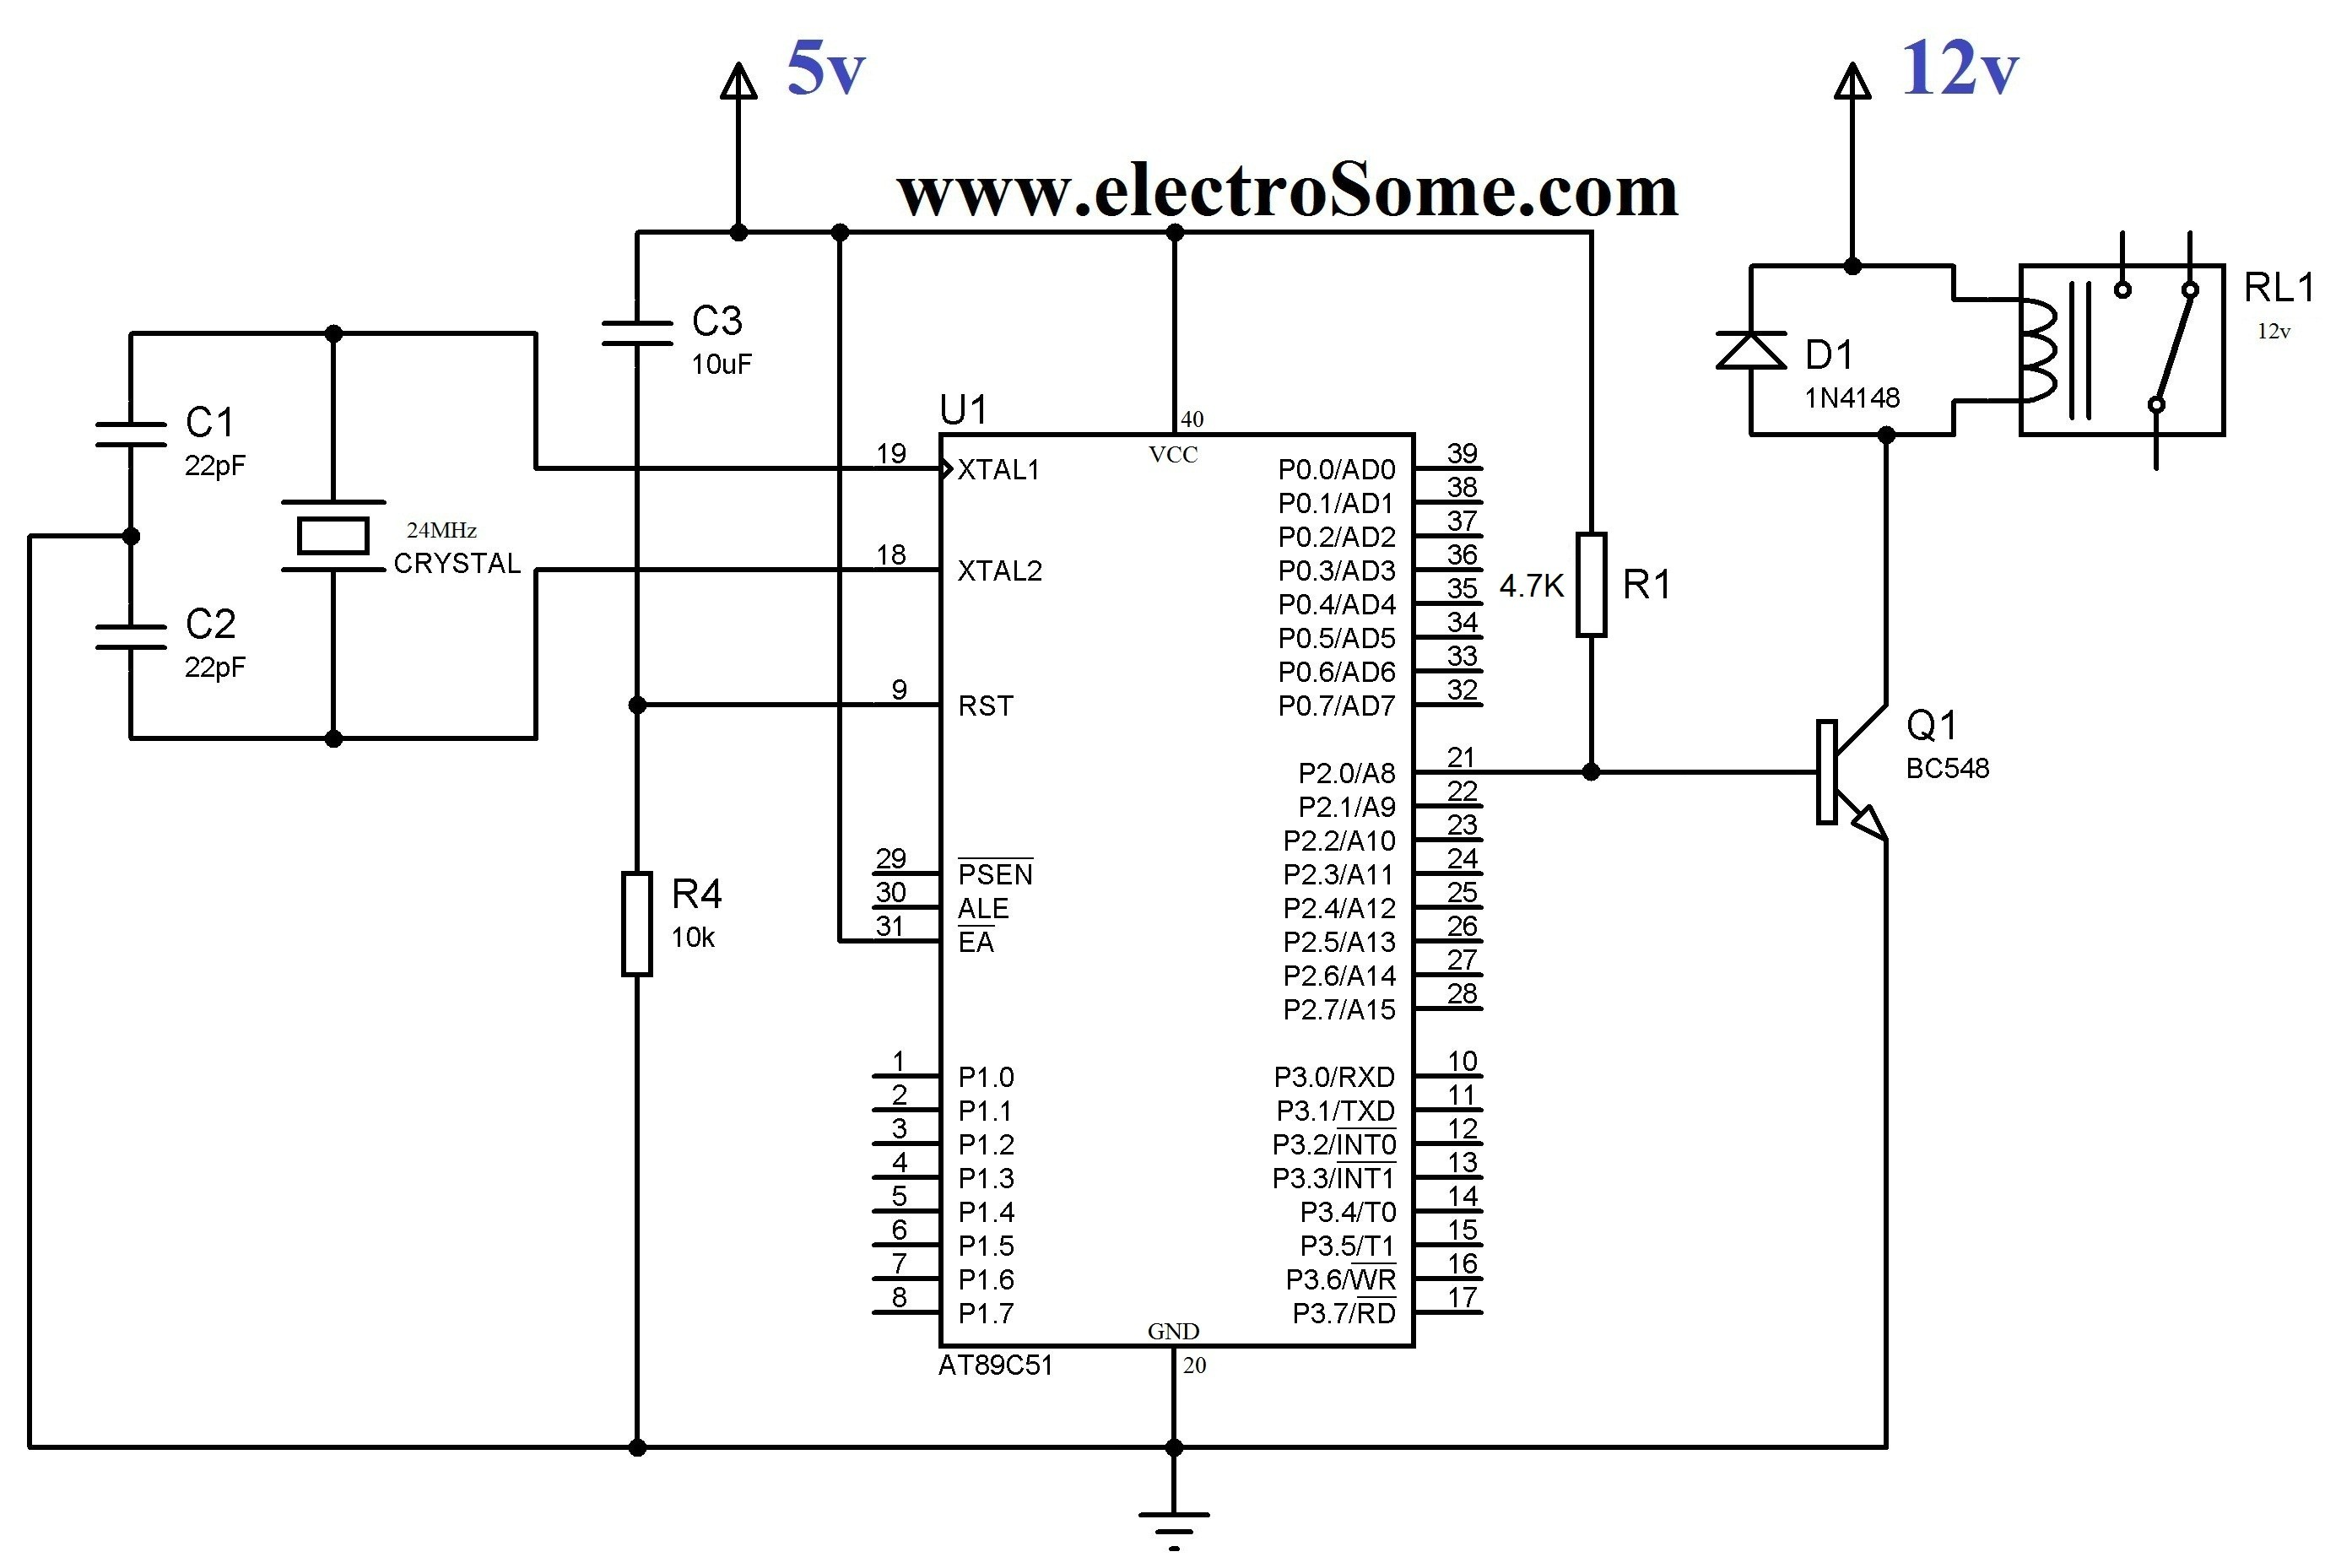 12 volt relay wiring diagram unique 12v relay wiring